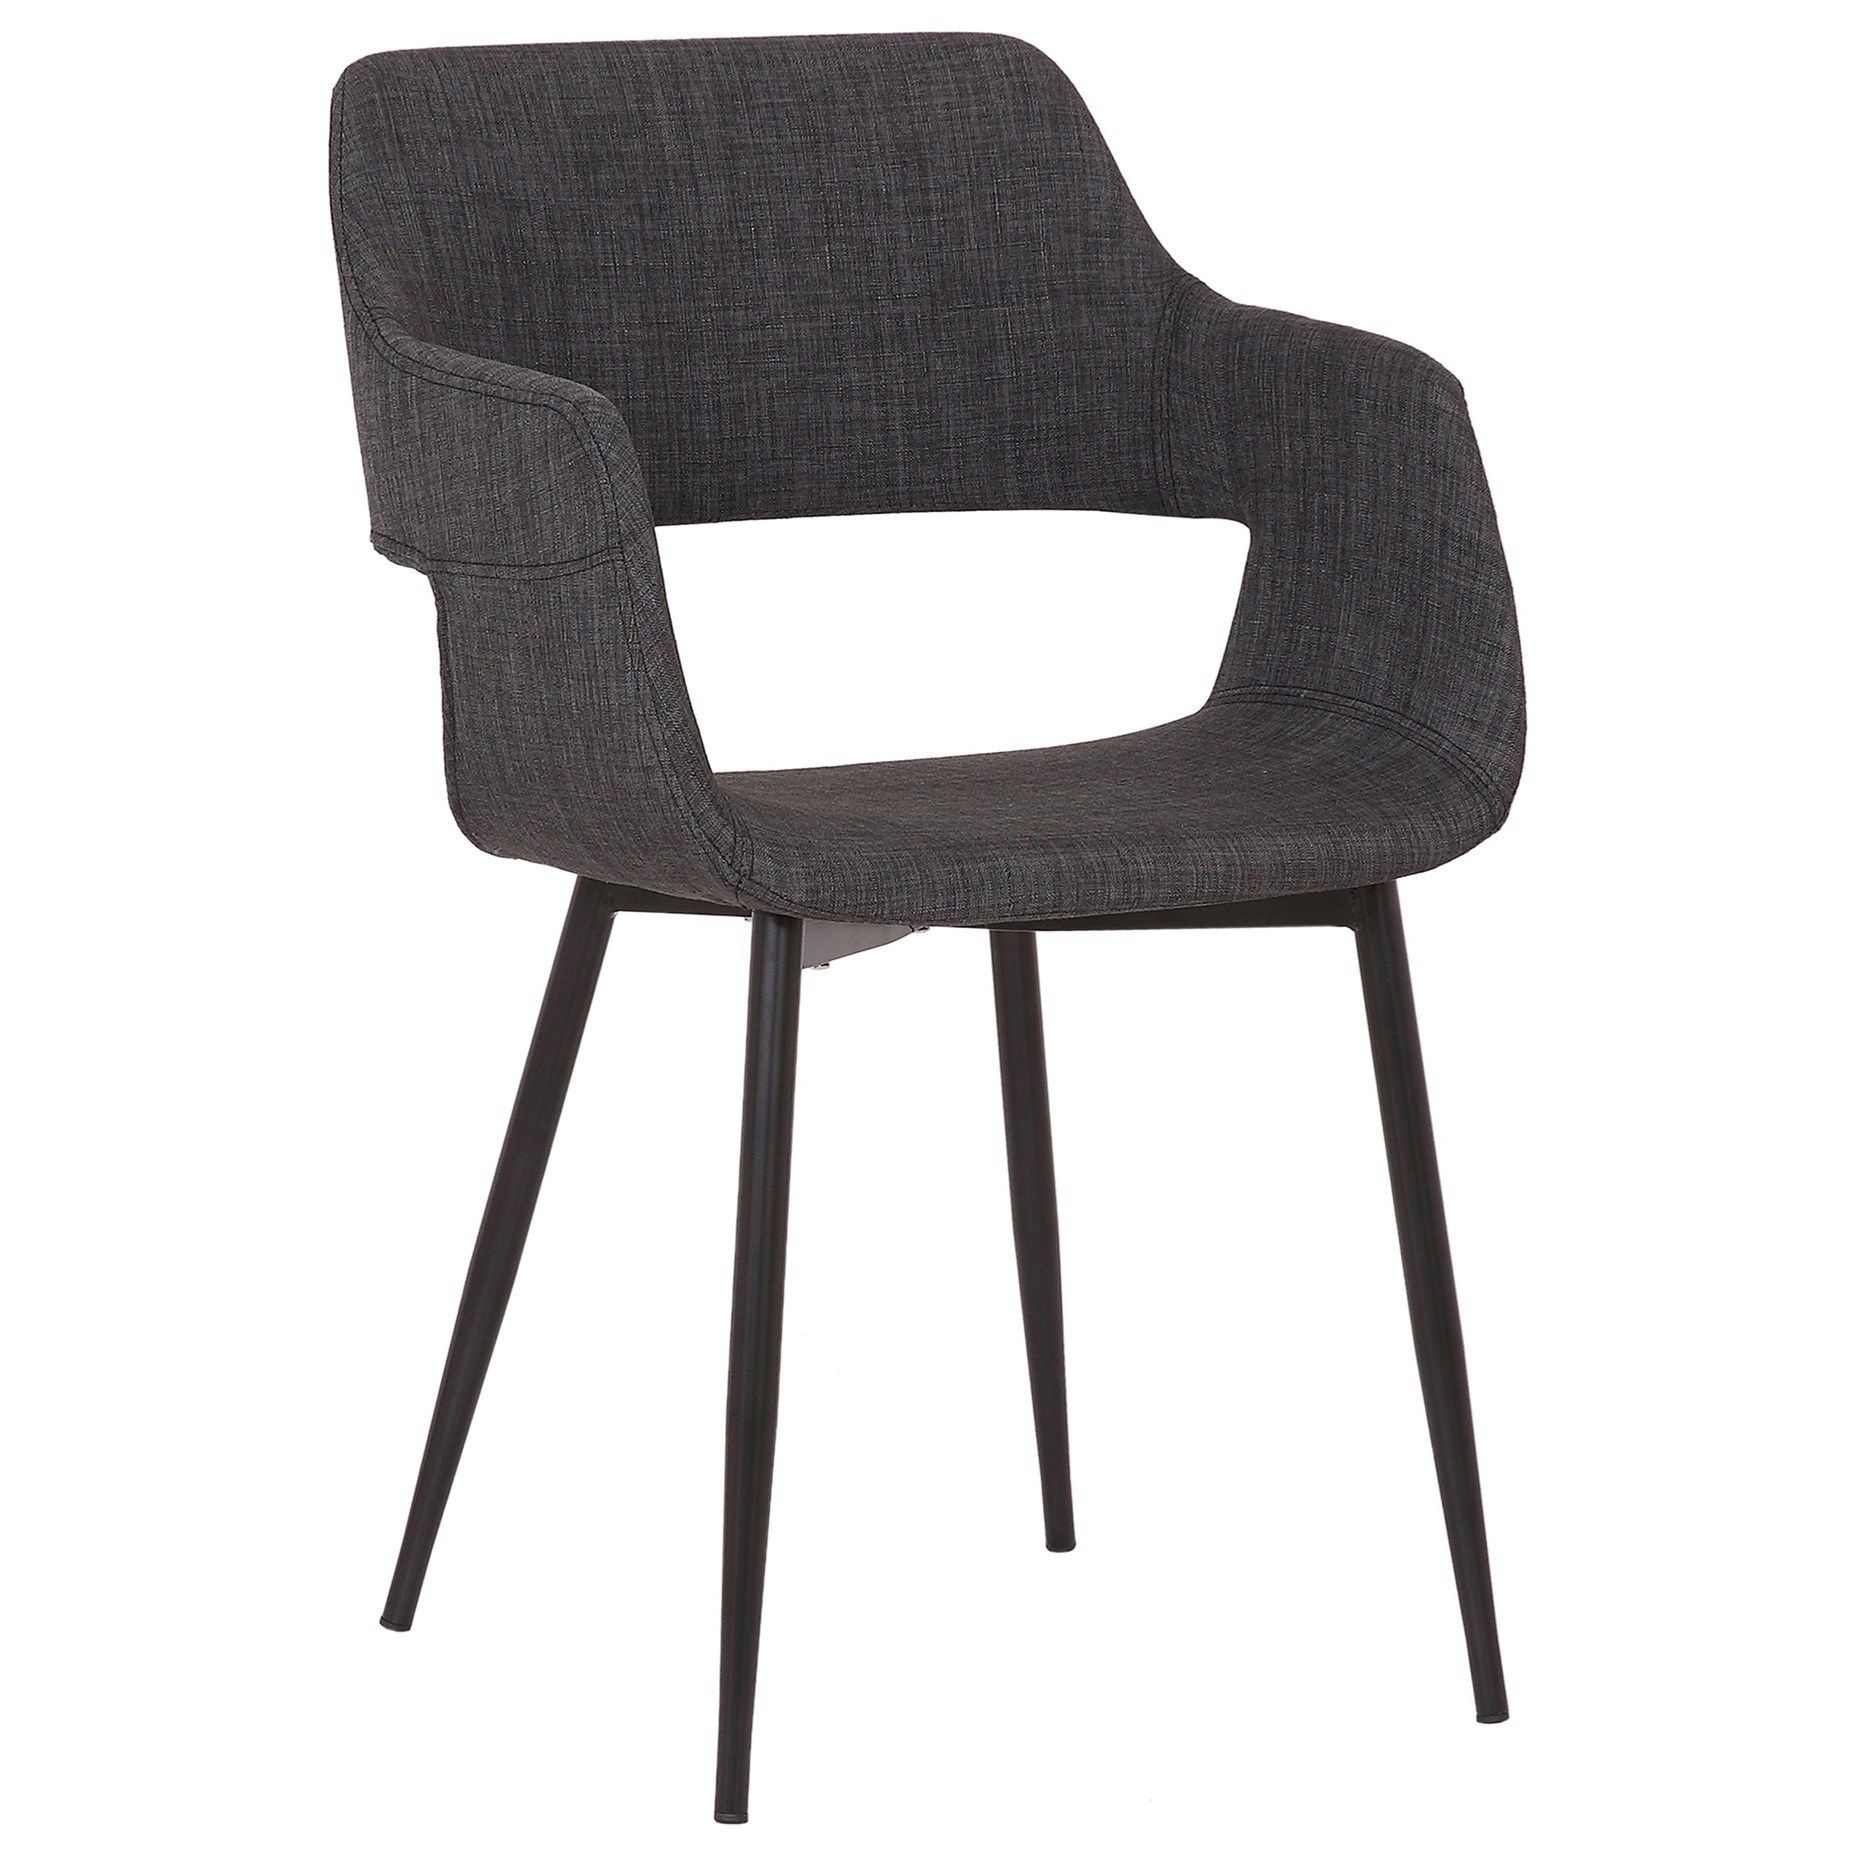 Ariana Mid-Century Charcoal Open Back Dining Chair by Armen Living at Fisher Home Furnishings